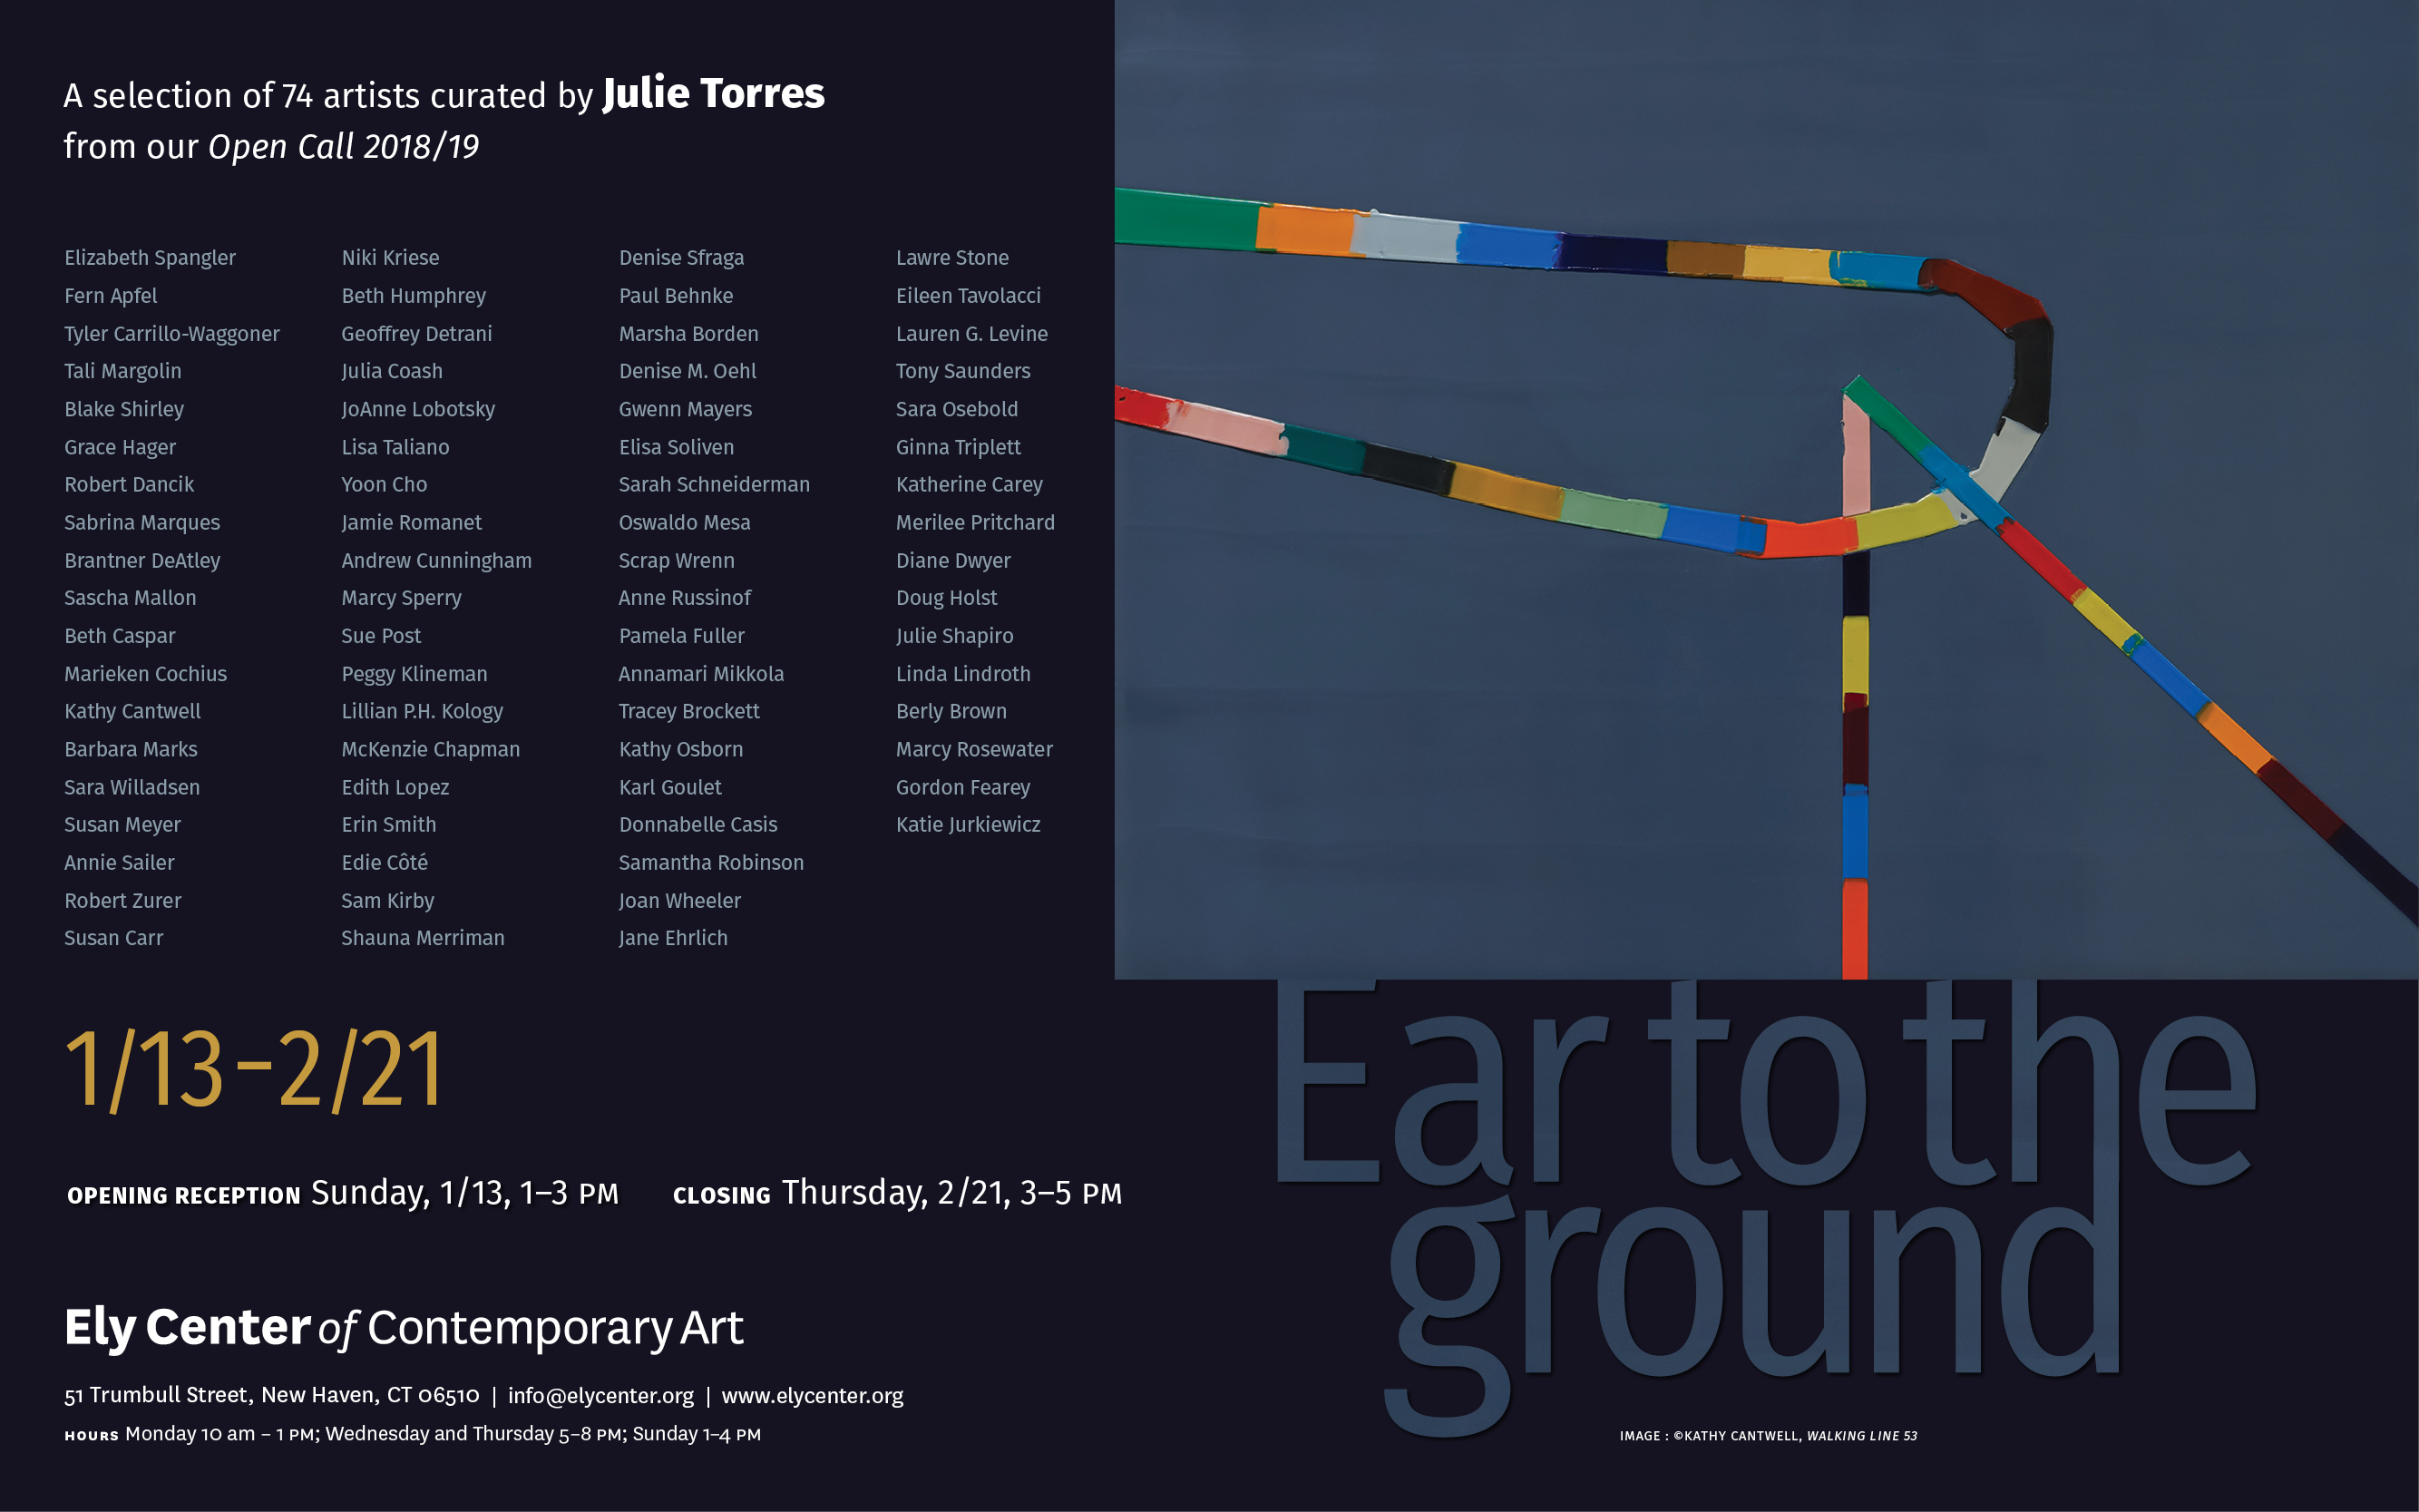 Ear to the Ground - Ely Center of Contemporary Art